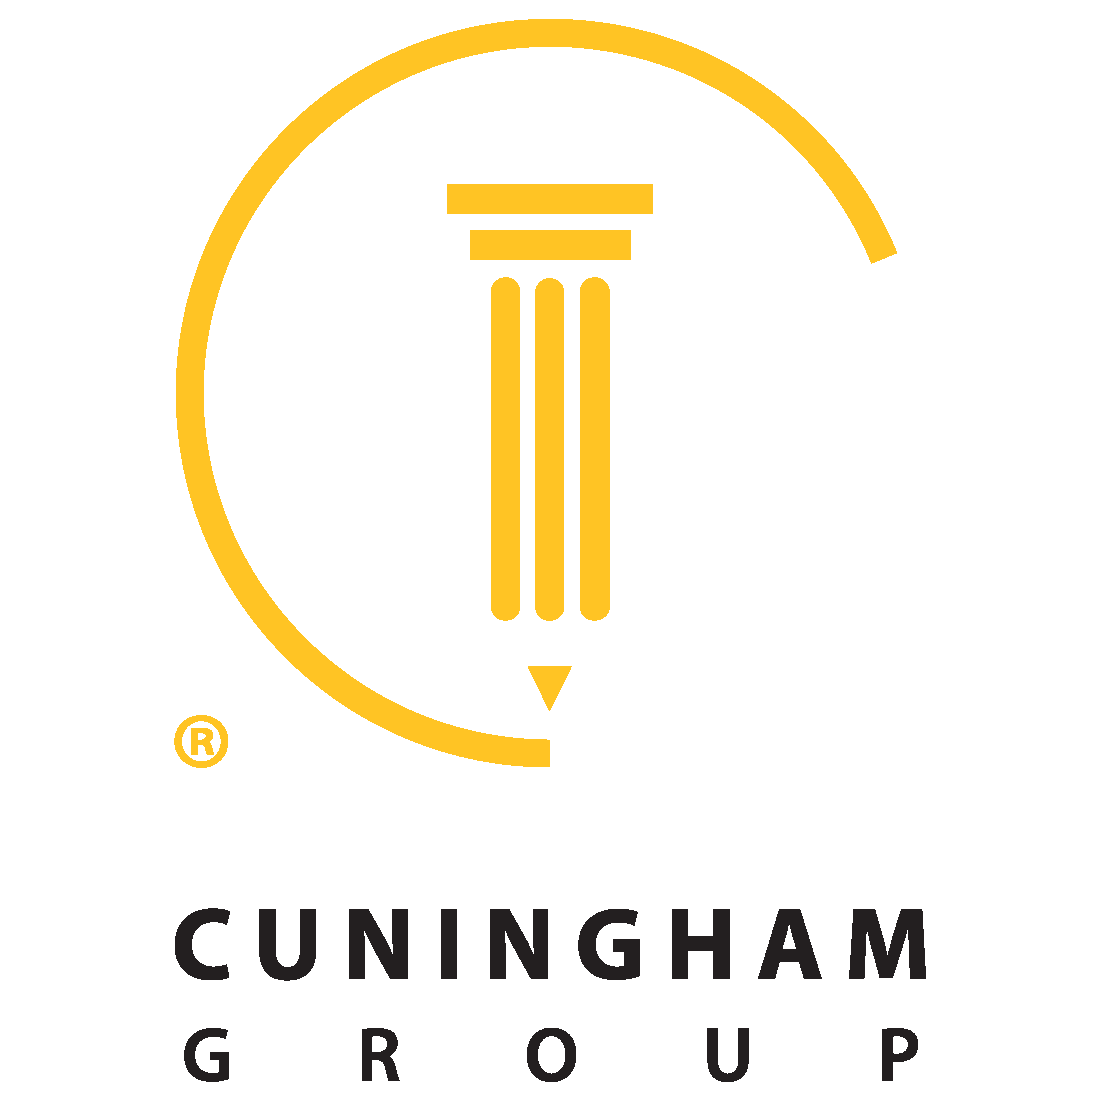 Cuningham Group logo